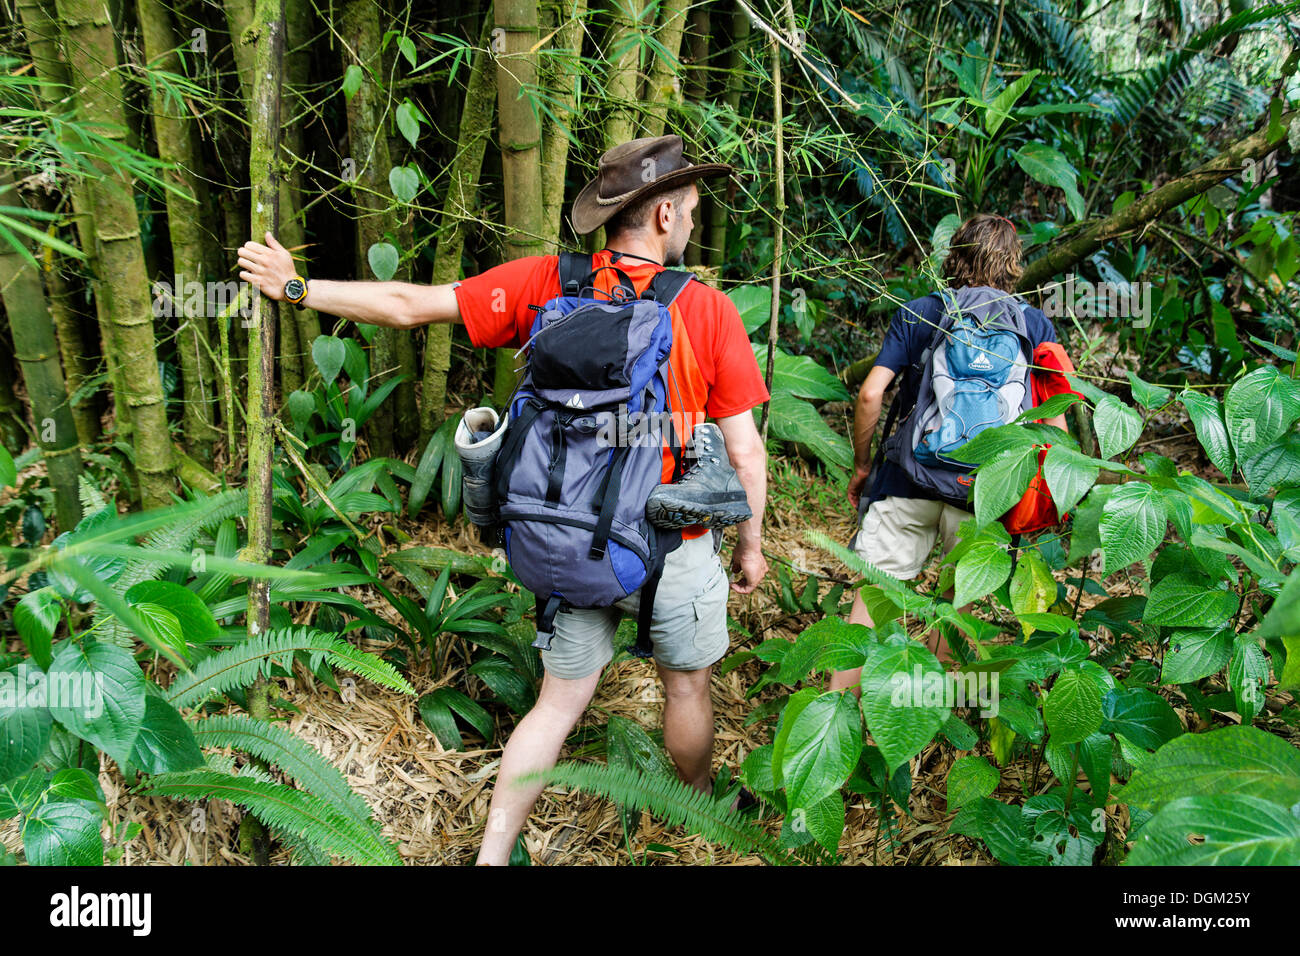 tourists during jungle trekking hike guadeloupe national park stock photo royalty free image. Black Bedroom Furniture Sets. Home Design Ideas